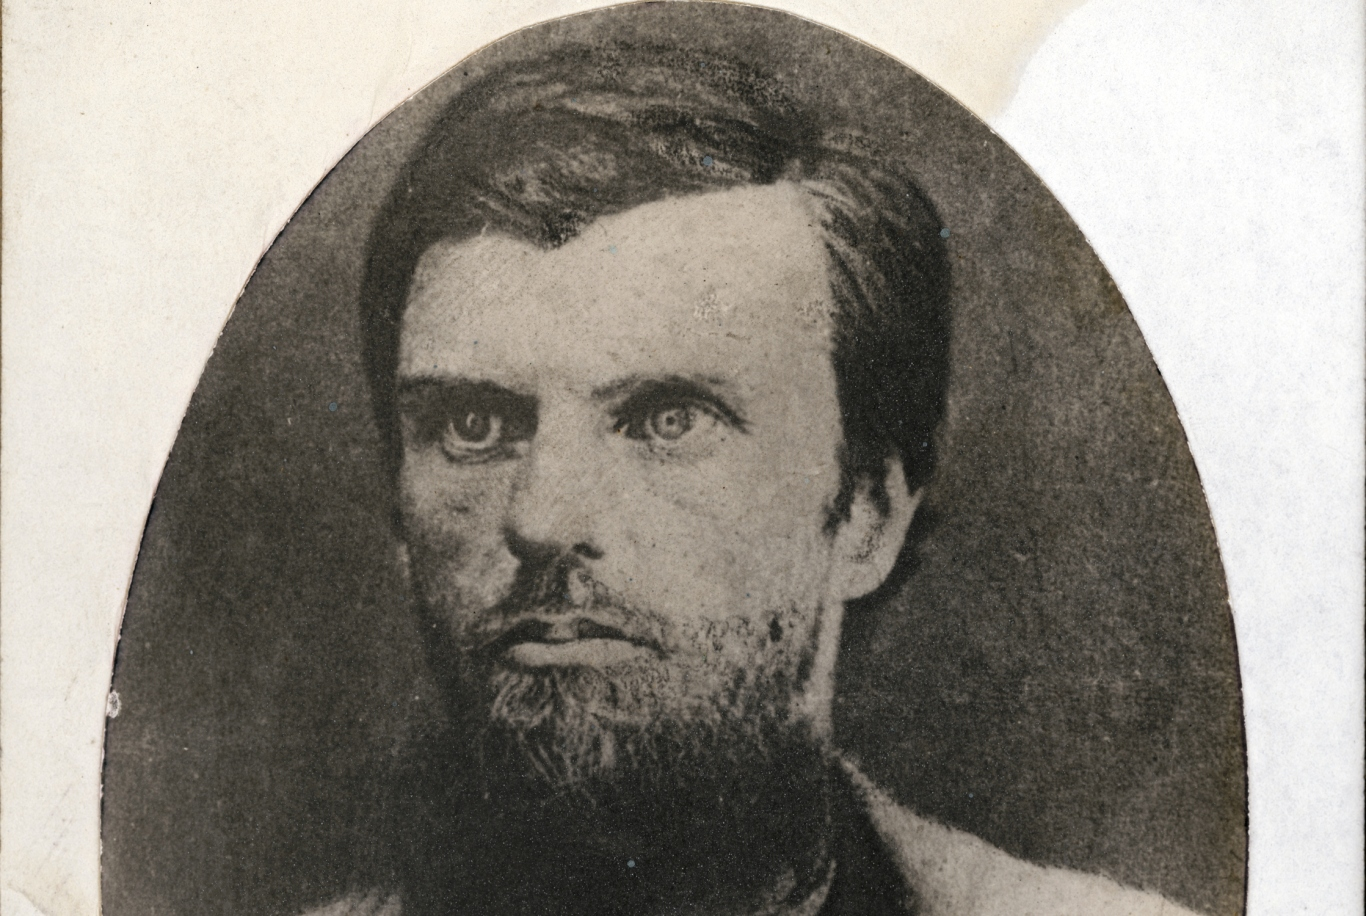 Cropped version of photo portrait of bearded man, mounted on card.